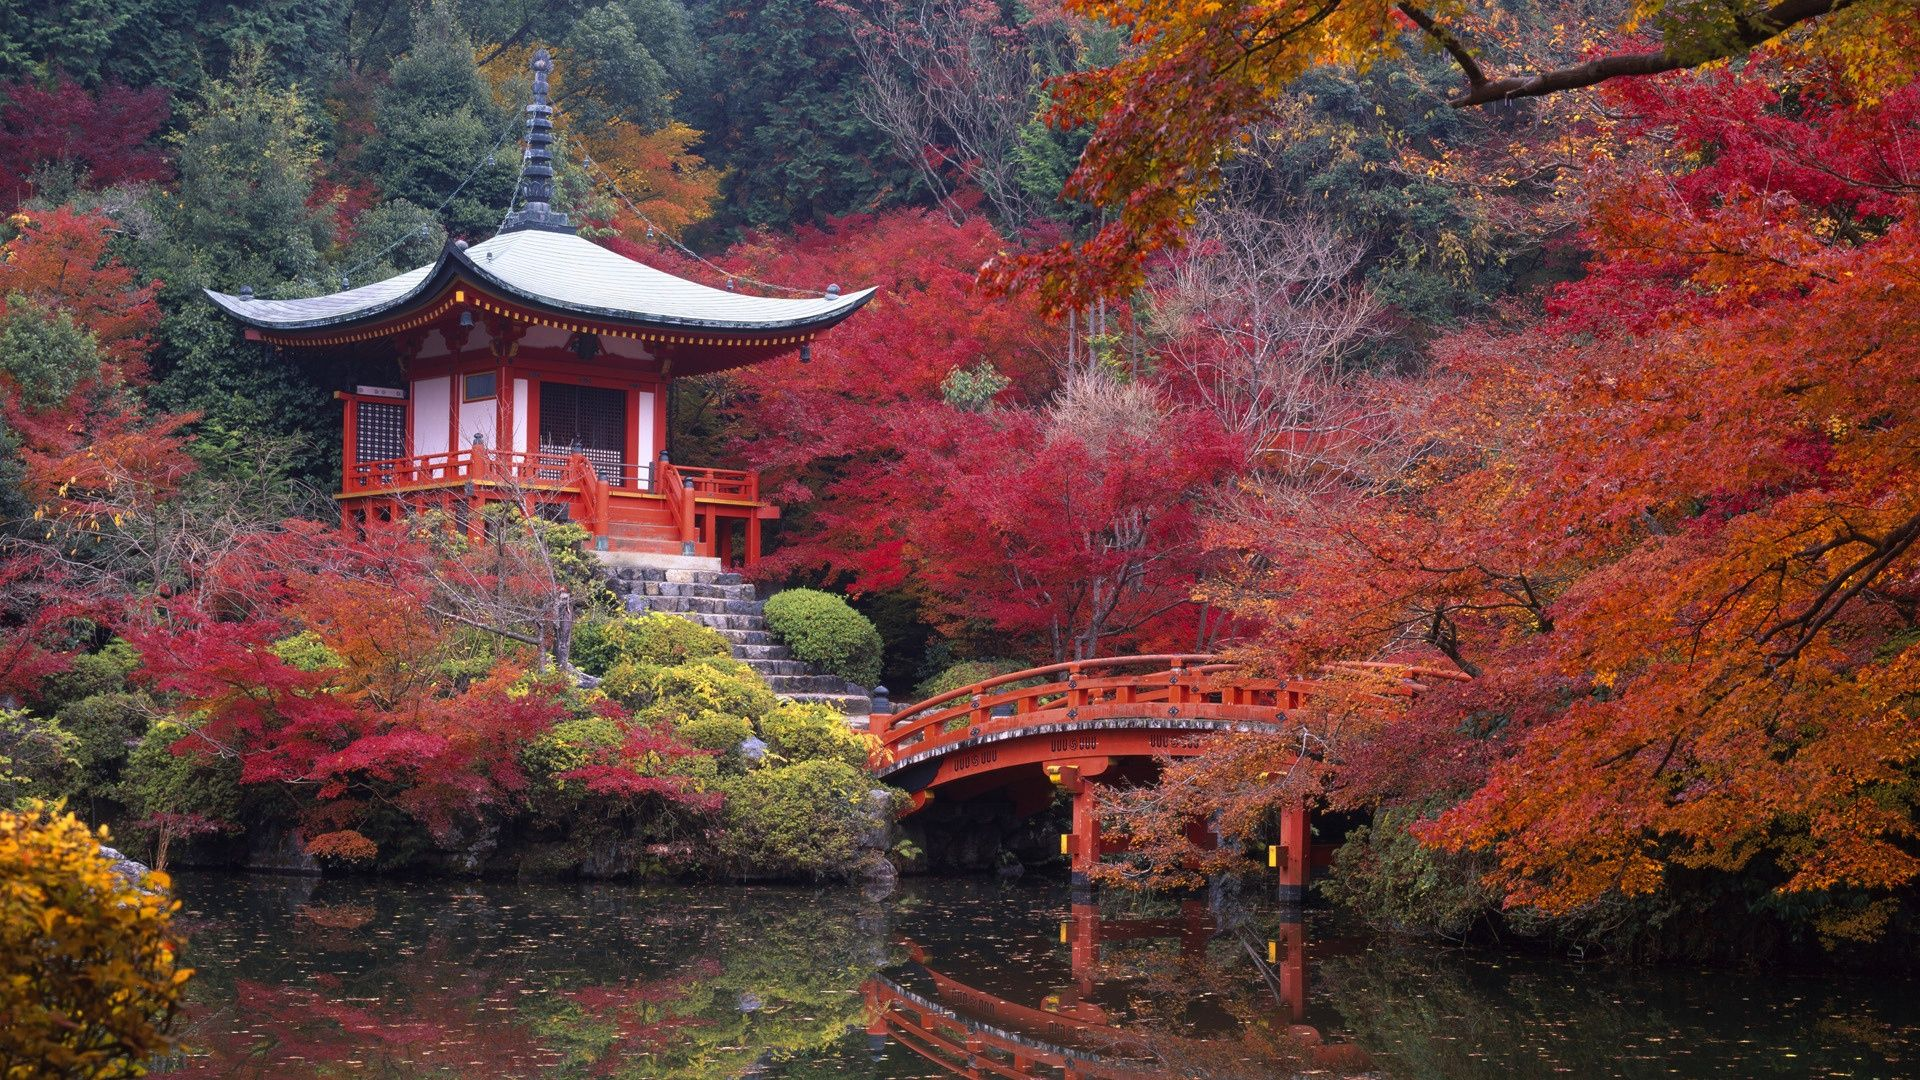 Colorful Japan Landscape Wallpaper PC Wallpaper WallpaperLepi 1920x1080